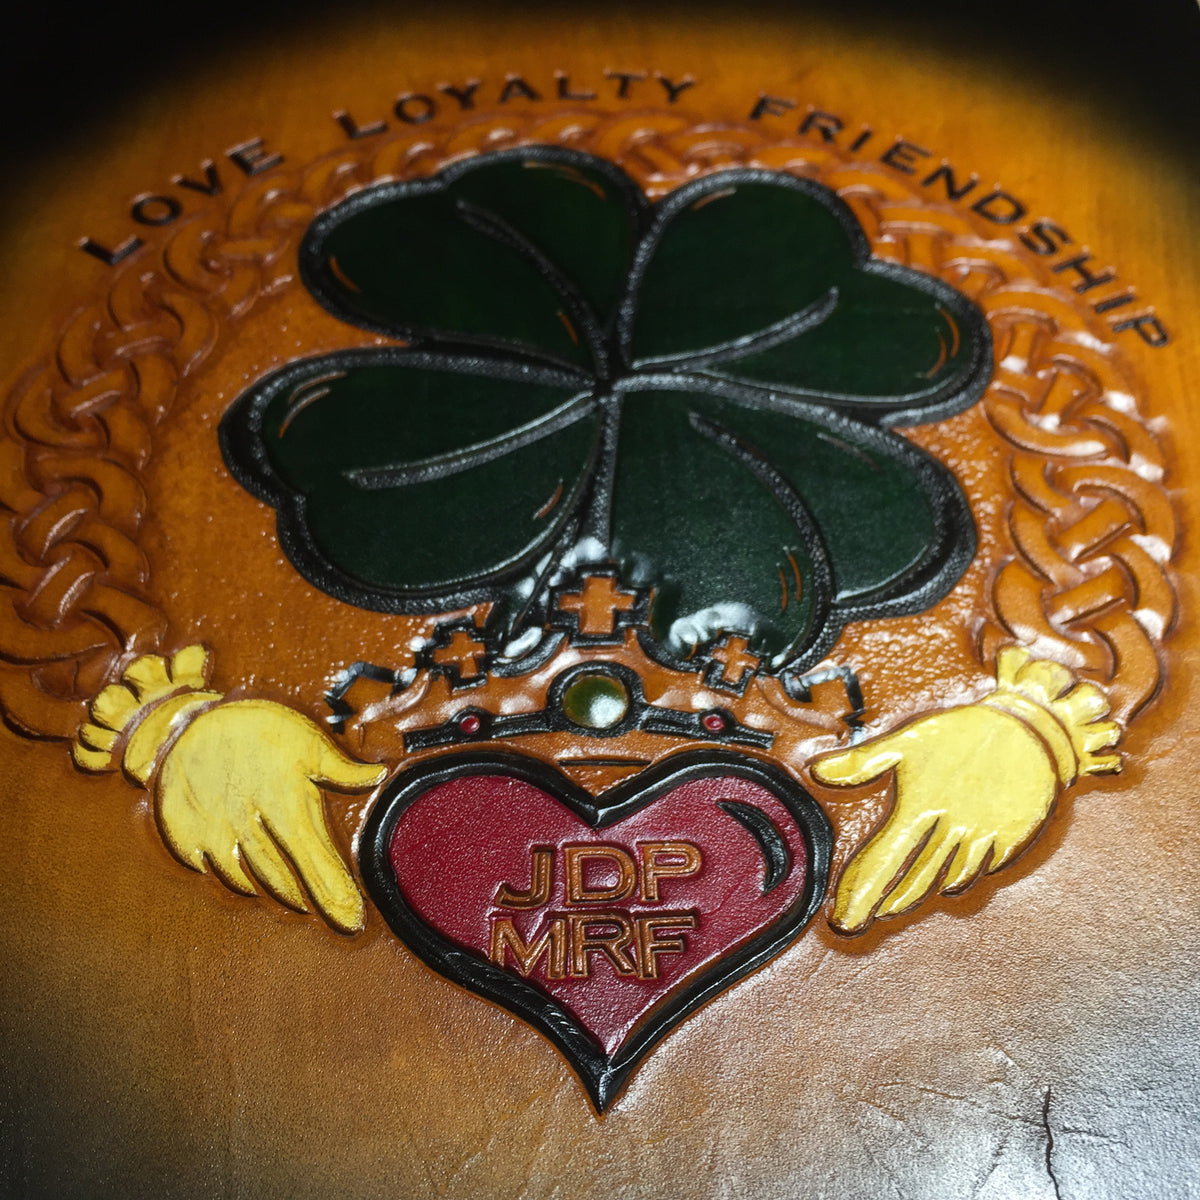 Claddagh Ring- Hand Tooled Wall Art - Nerd Culture Leather